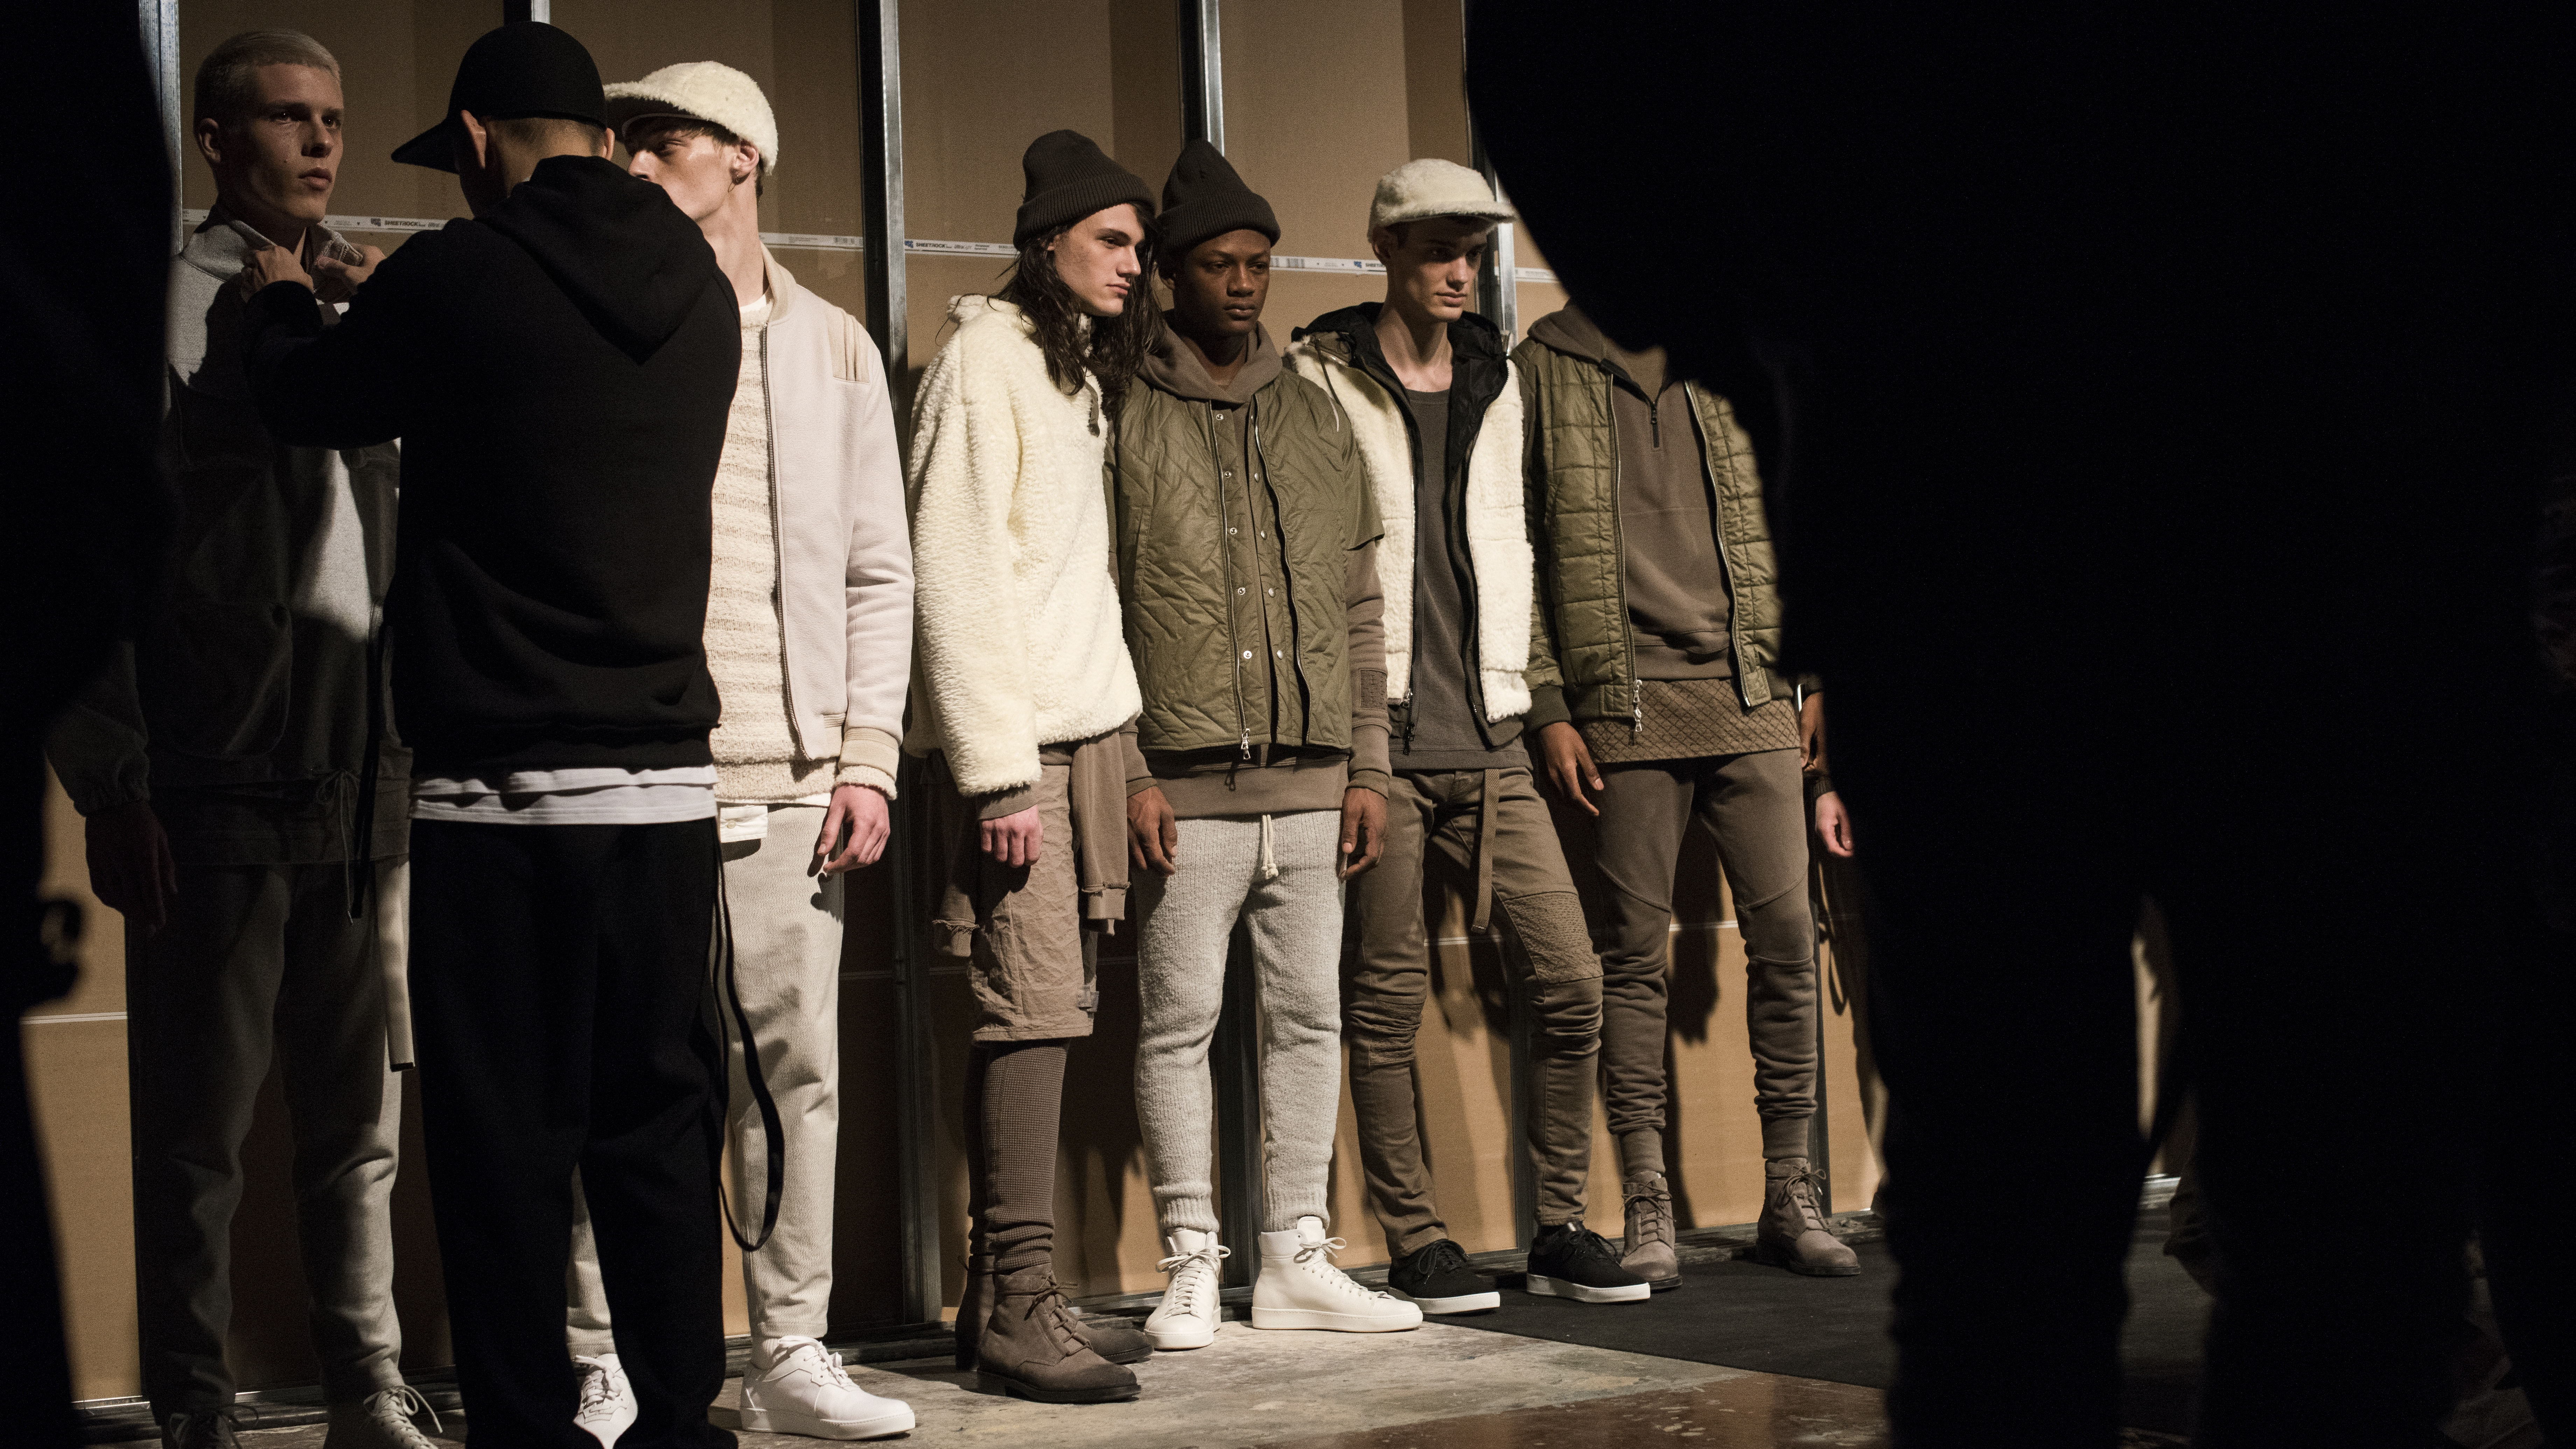 Models stand backstage at the John Elliott + CO fashion show during New York Fashion Week Men's Fall/Winter 2016 at Skylight at Clarkson Sq on February 4, 2016 in New York City. (Photo by Ali Smith/Getty Images)